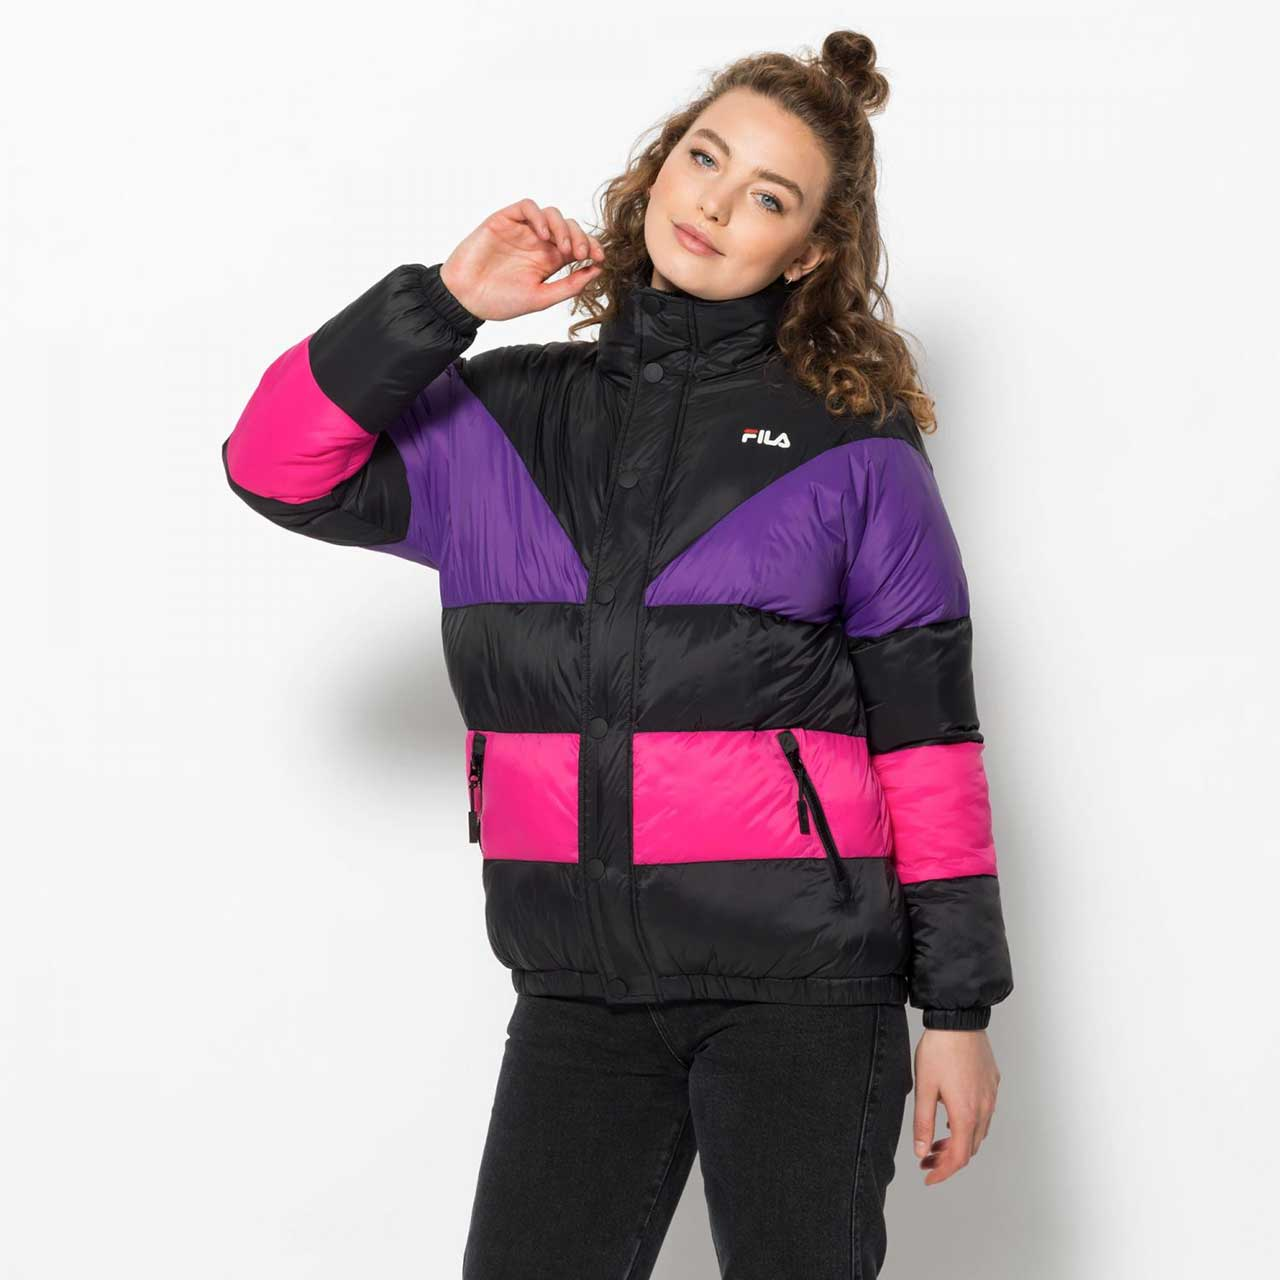 FILA Barevná bunda Reilly Puff Jacket – XS